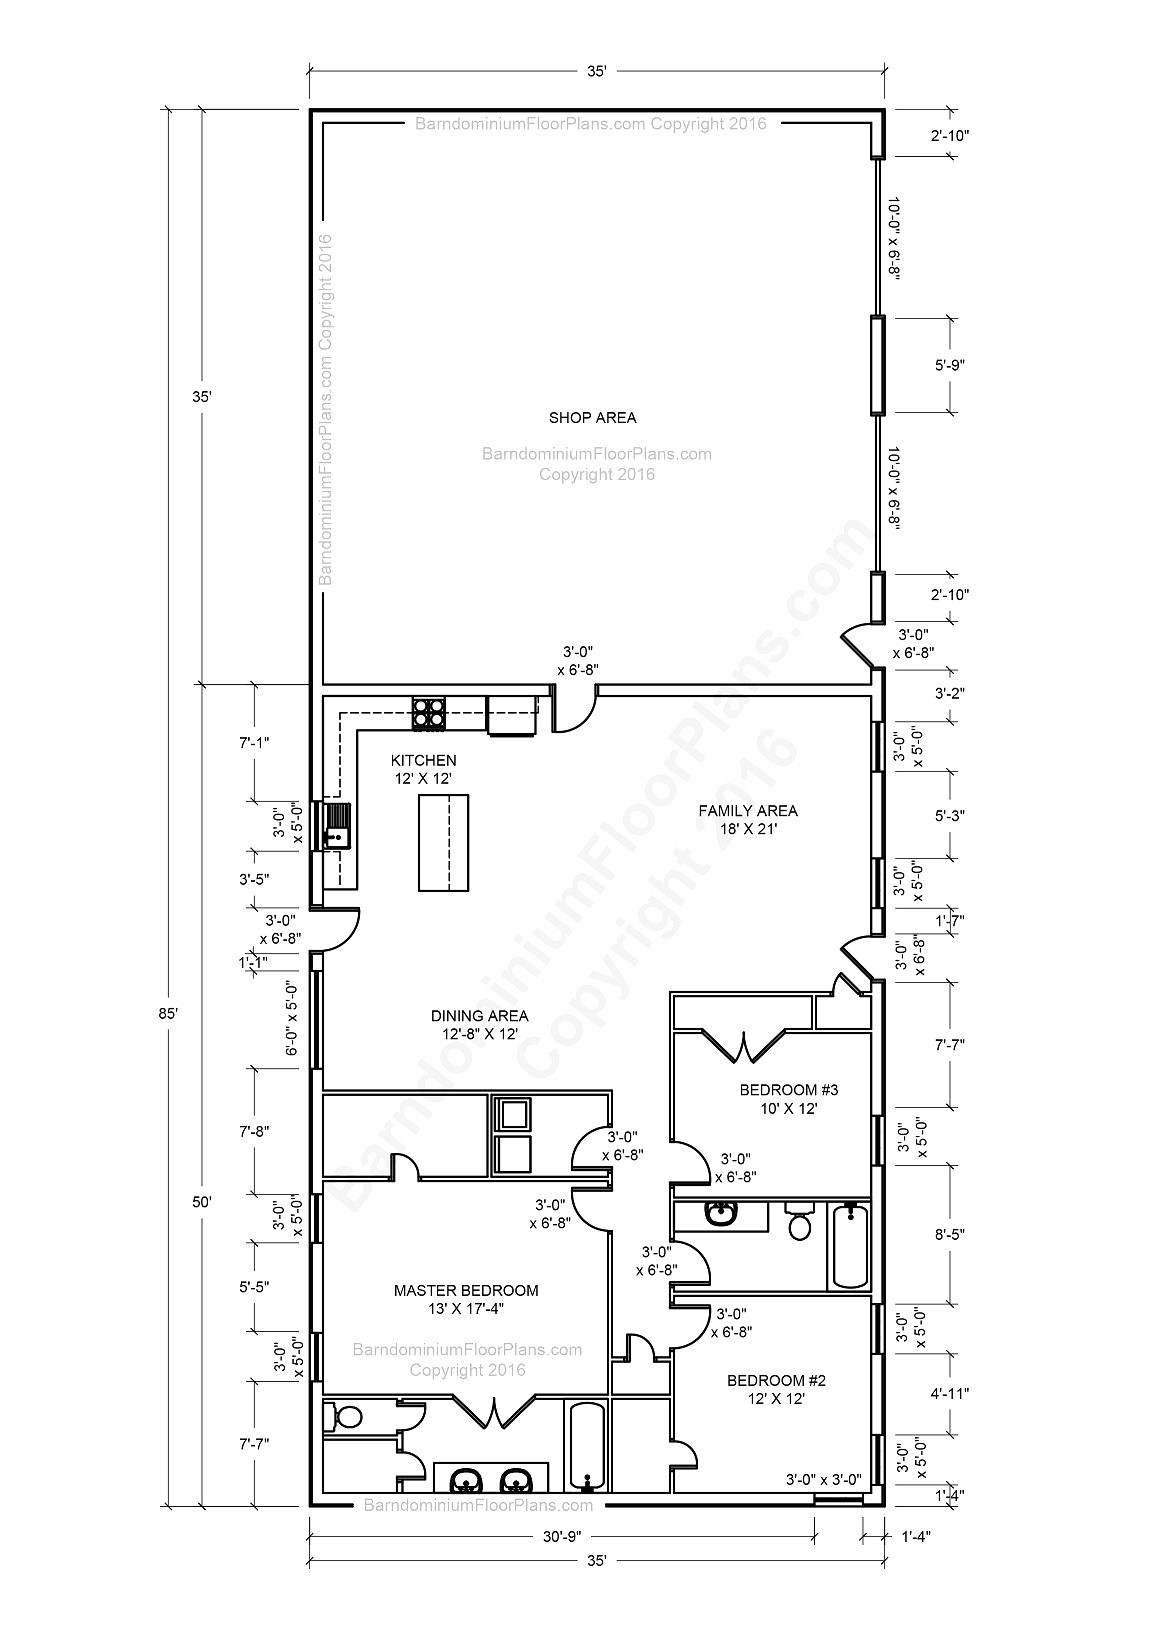 pole barn with living quarters floor plans elegant pole barn fresh pole barn homes plans best